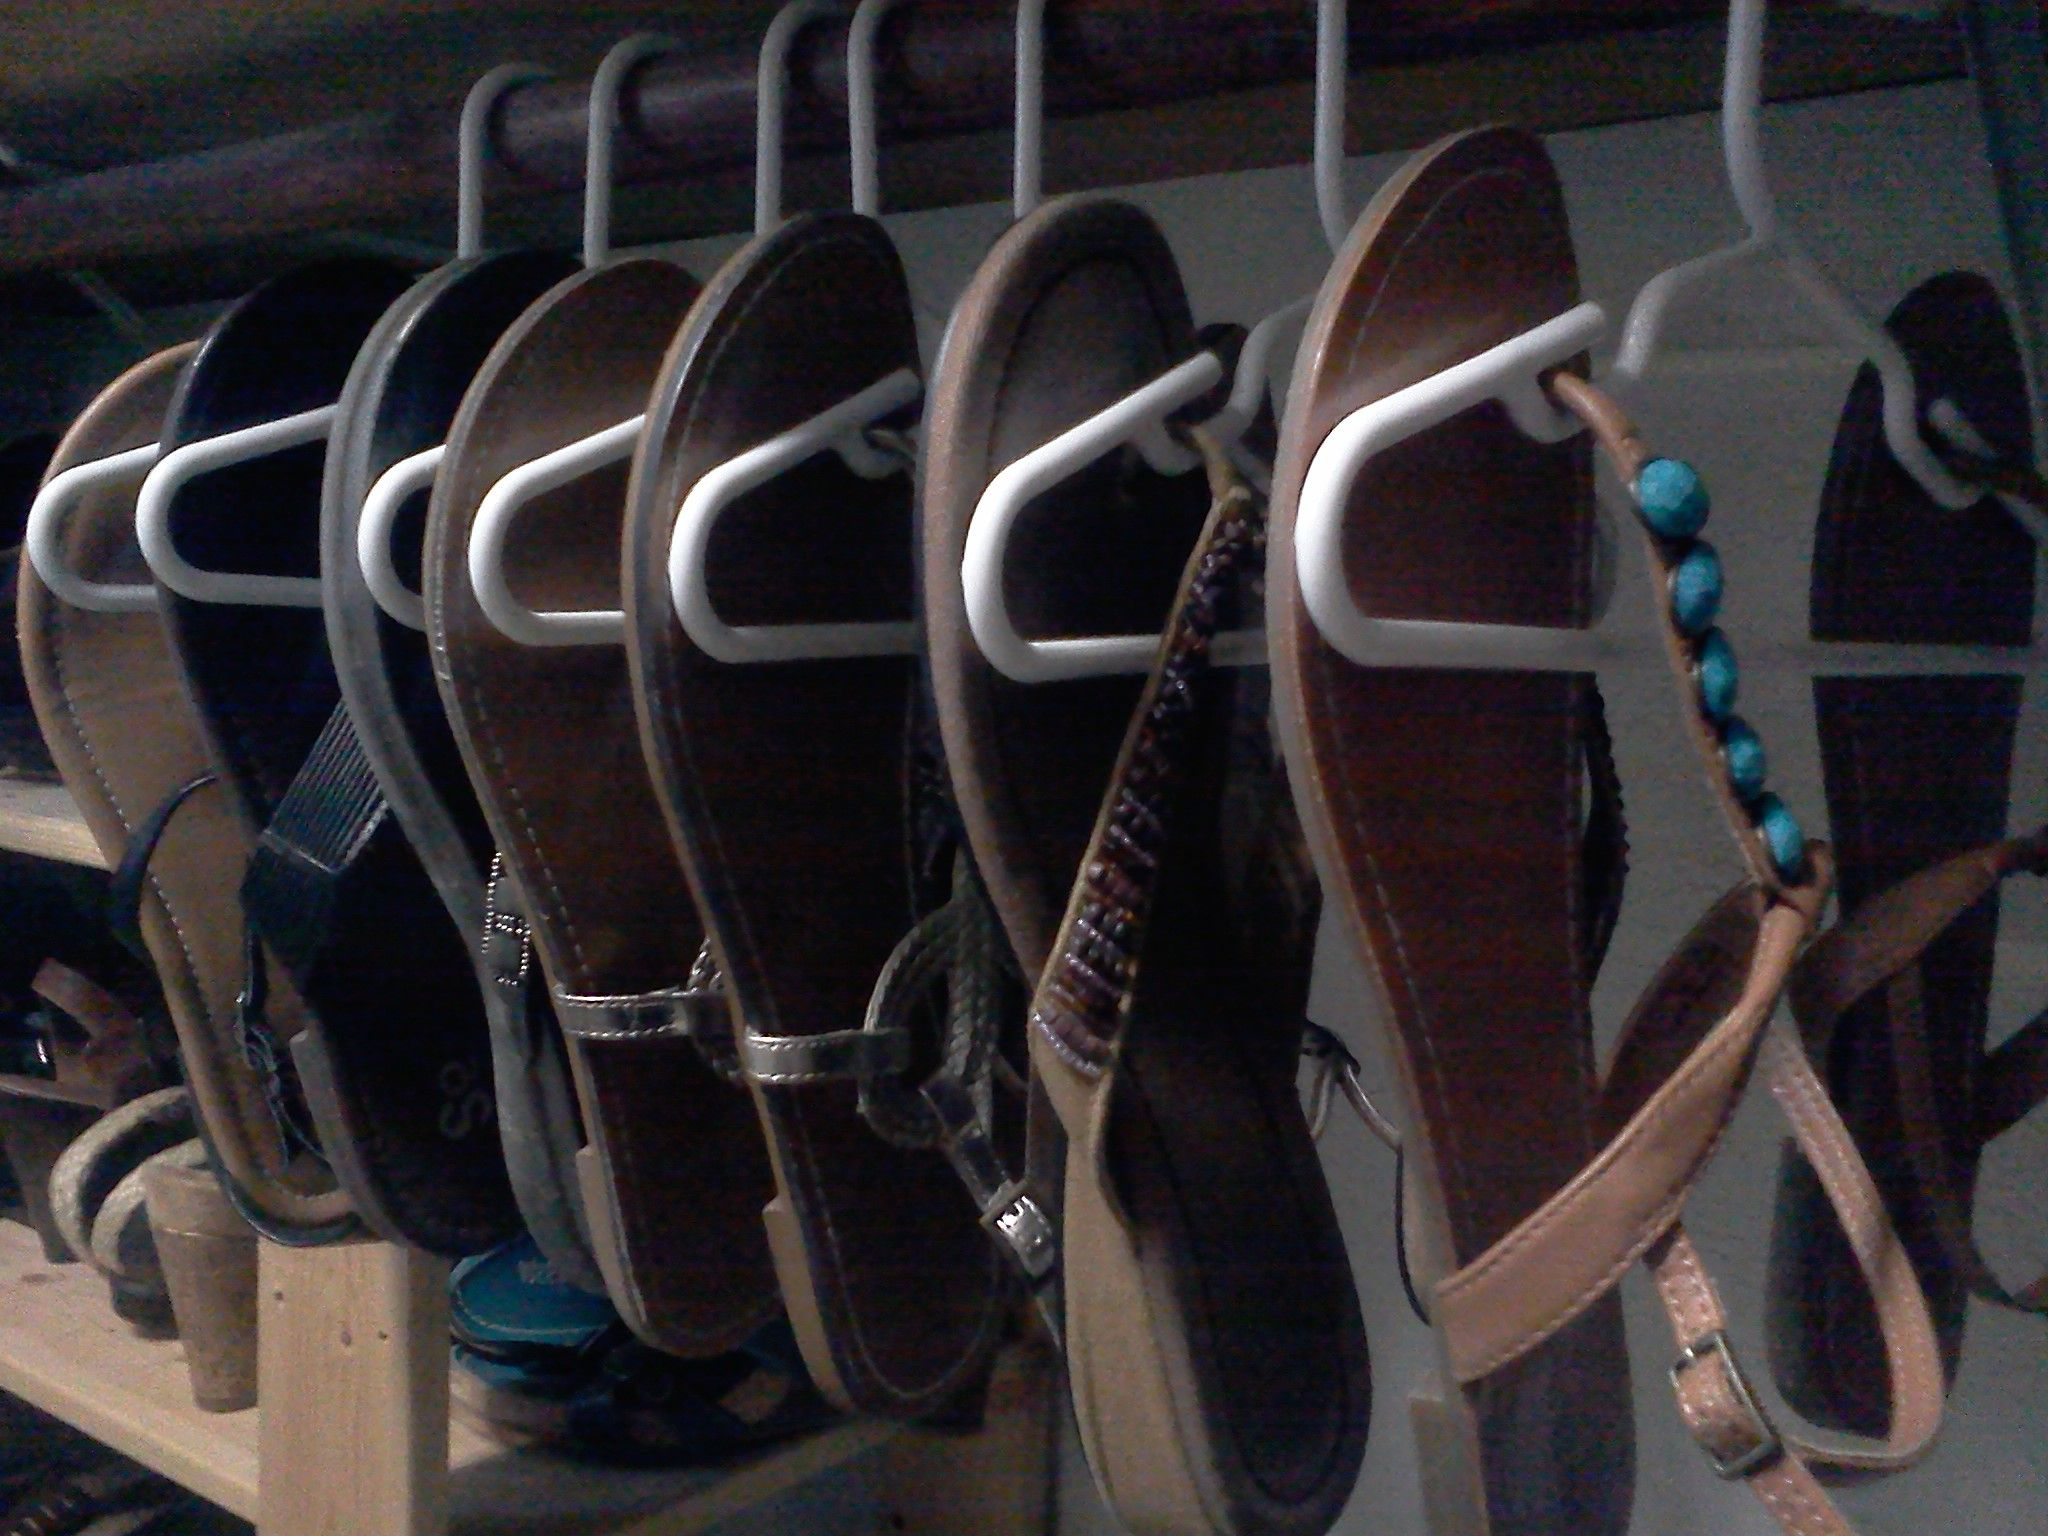 I saw a post for flip flop hangers where you had to cut and bend a wire hanger. I tried it, and it was too much work. Child size hangers, pack of 10 for just over a dollar, much easier!